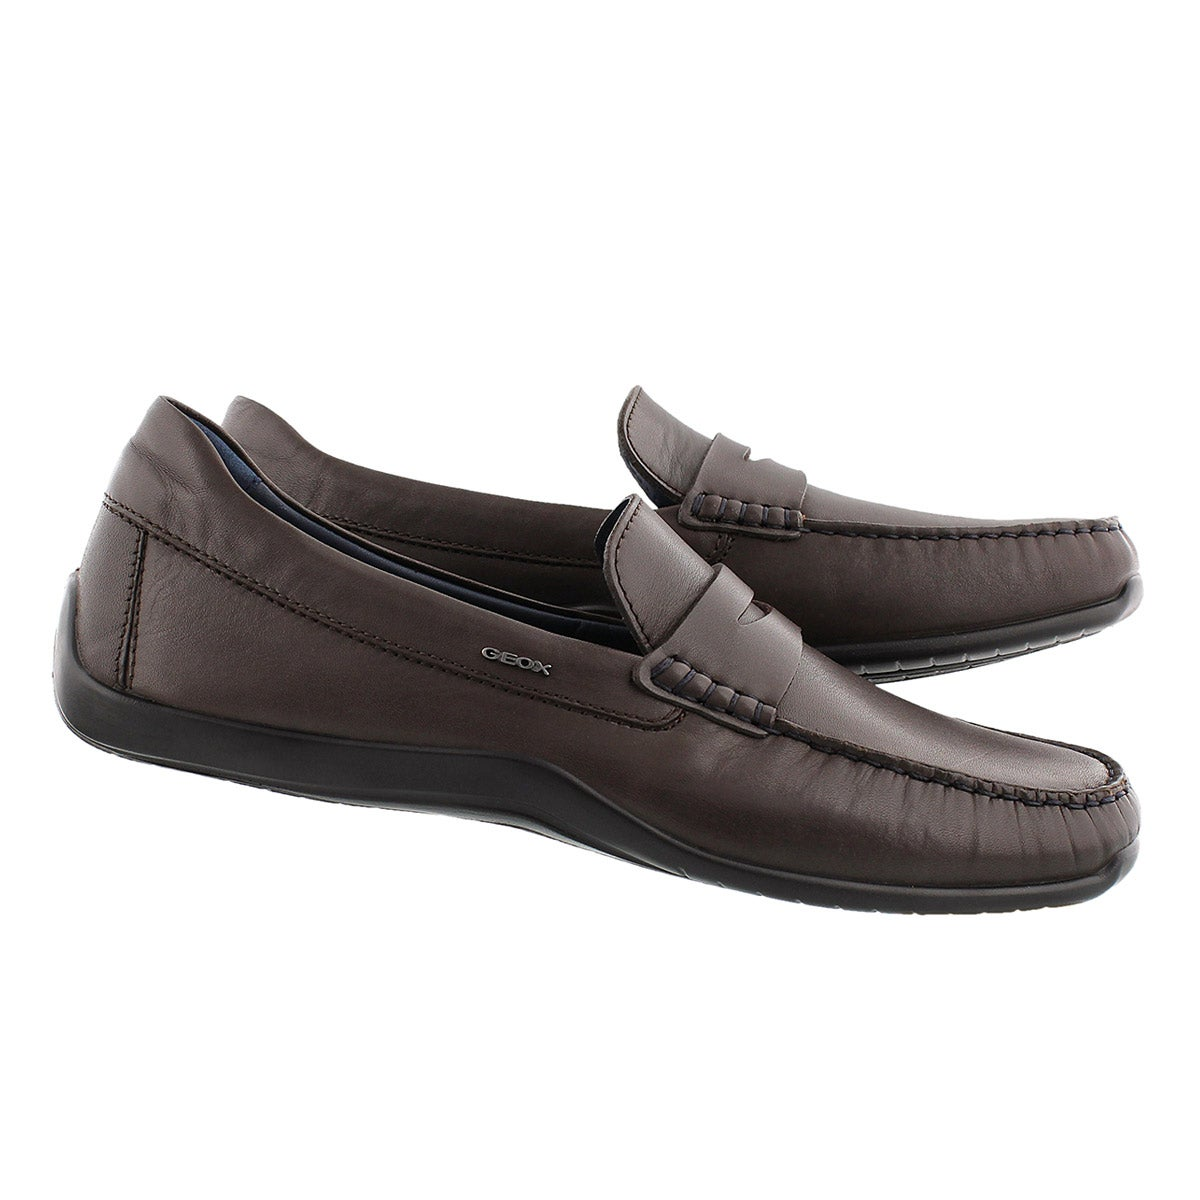 Mns Xense Mox coffee leather loafer